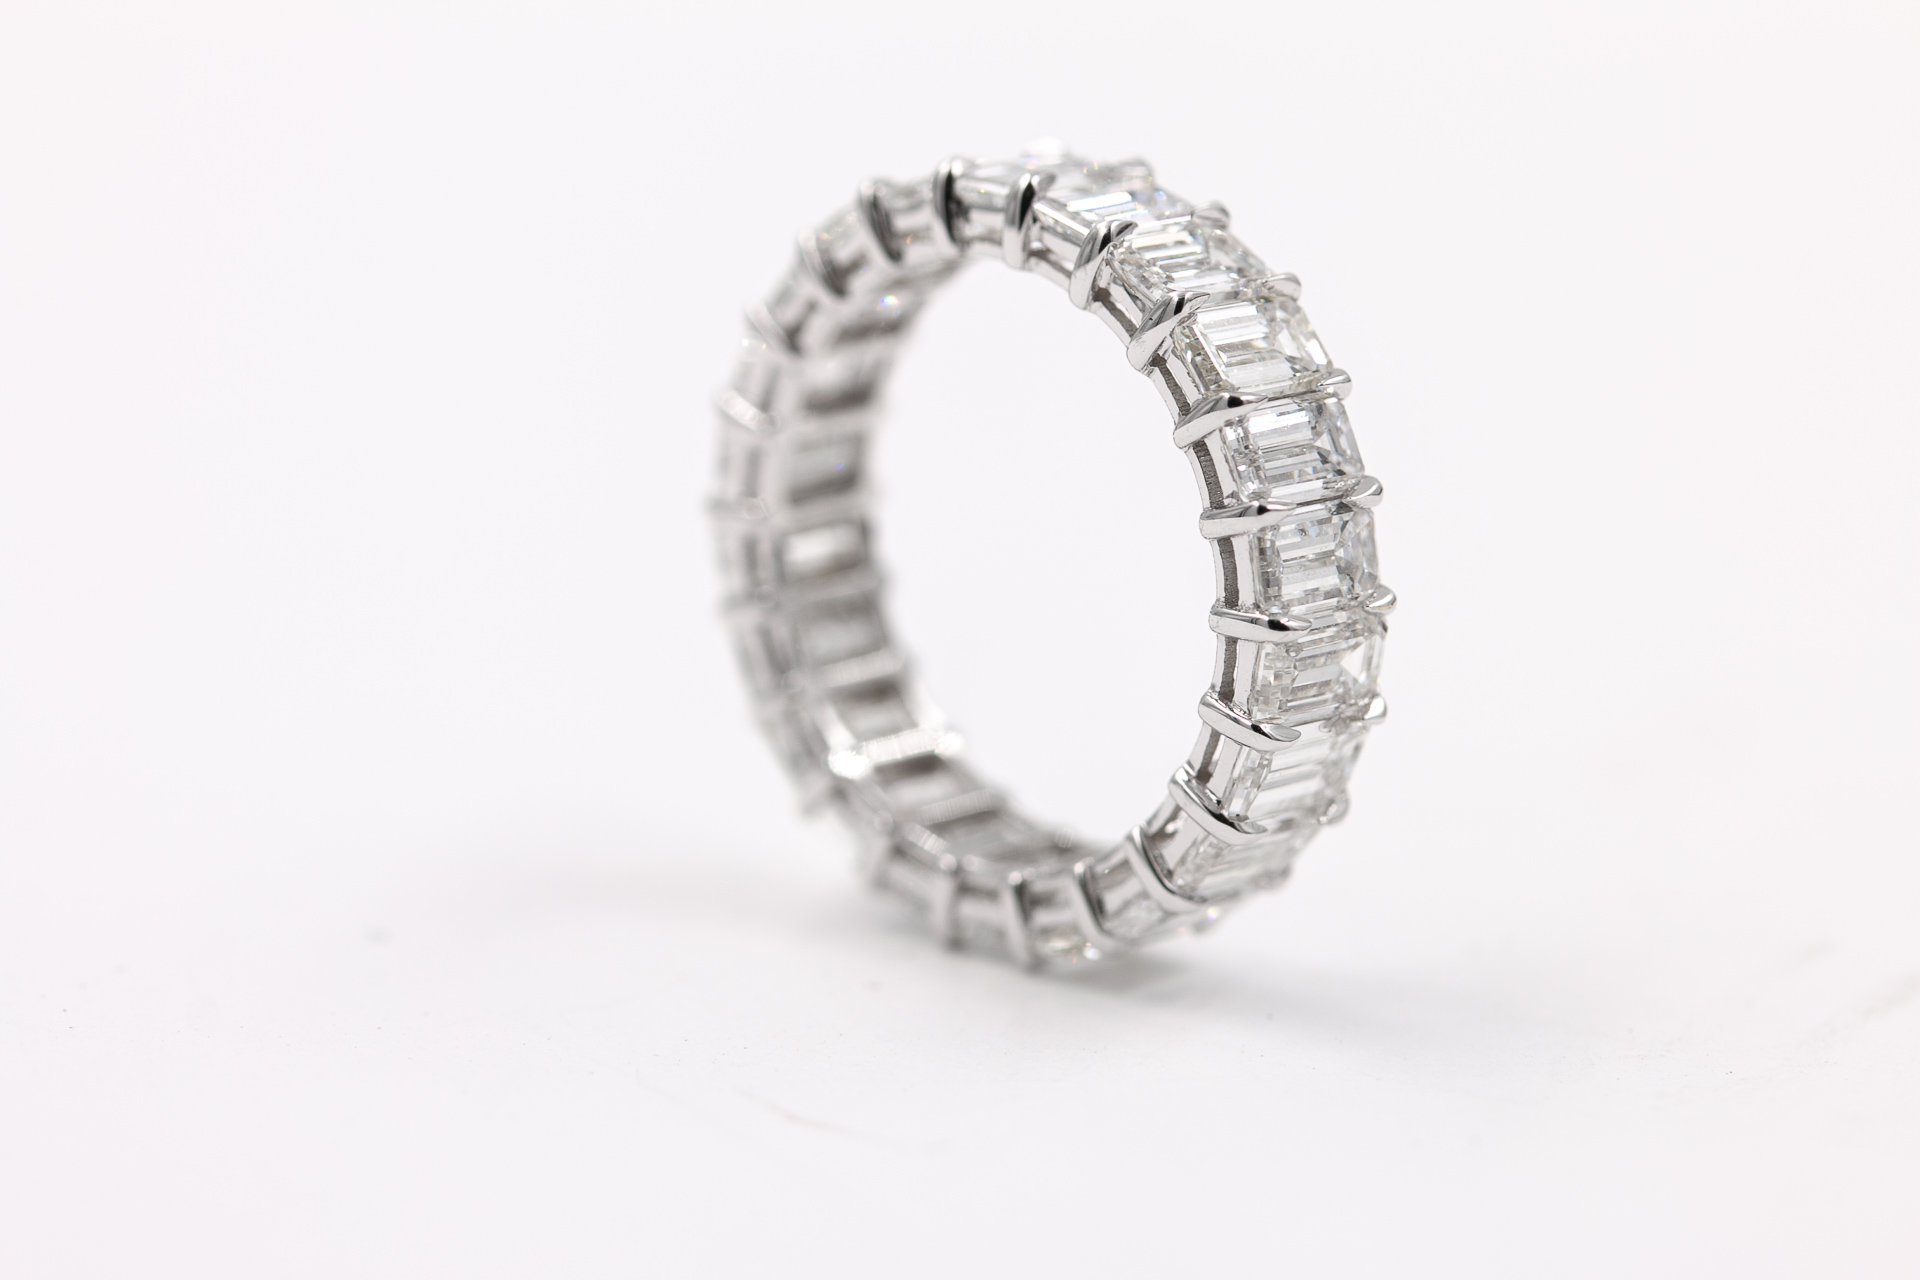 emerald-cut-diamonds-eternity-band-ring-3